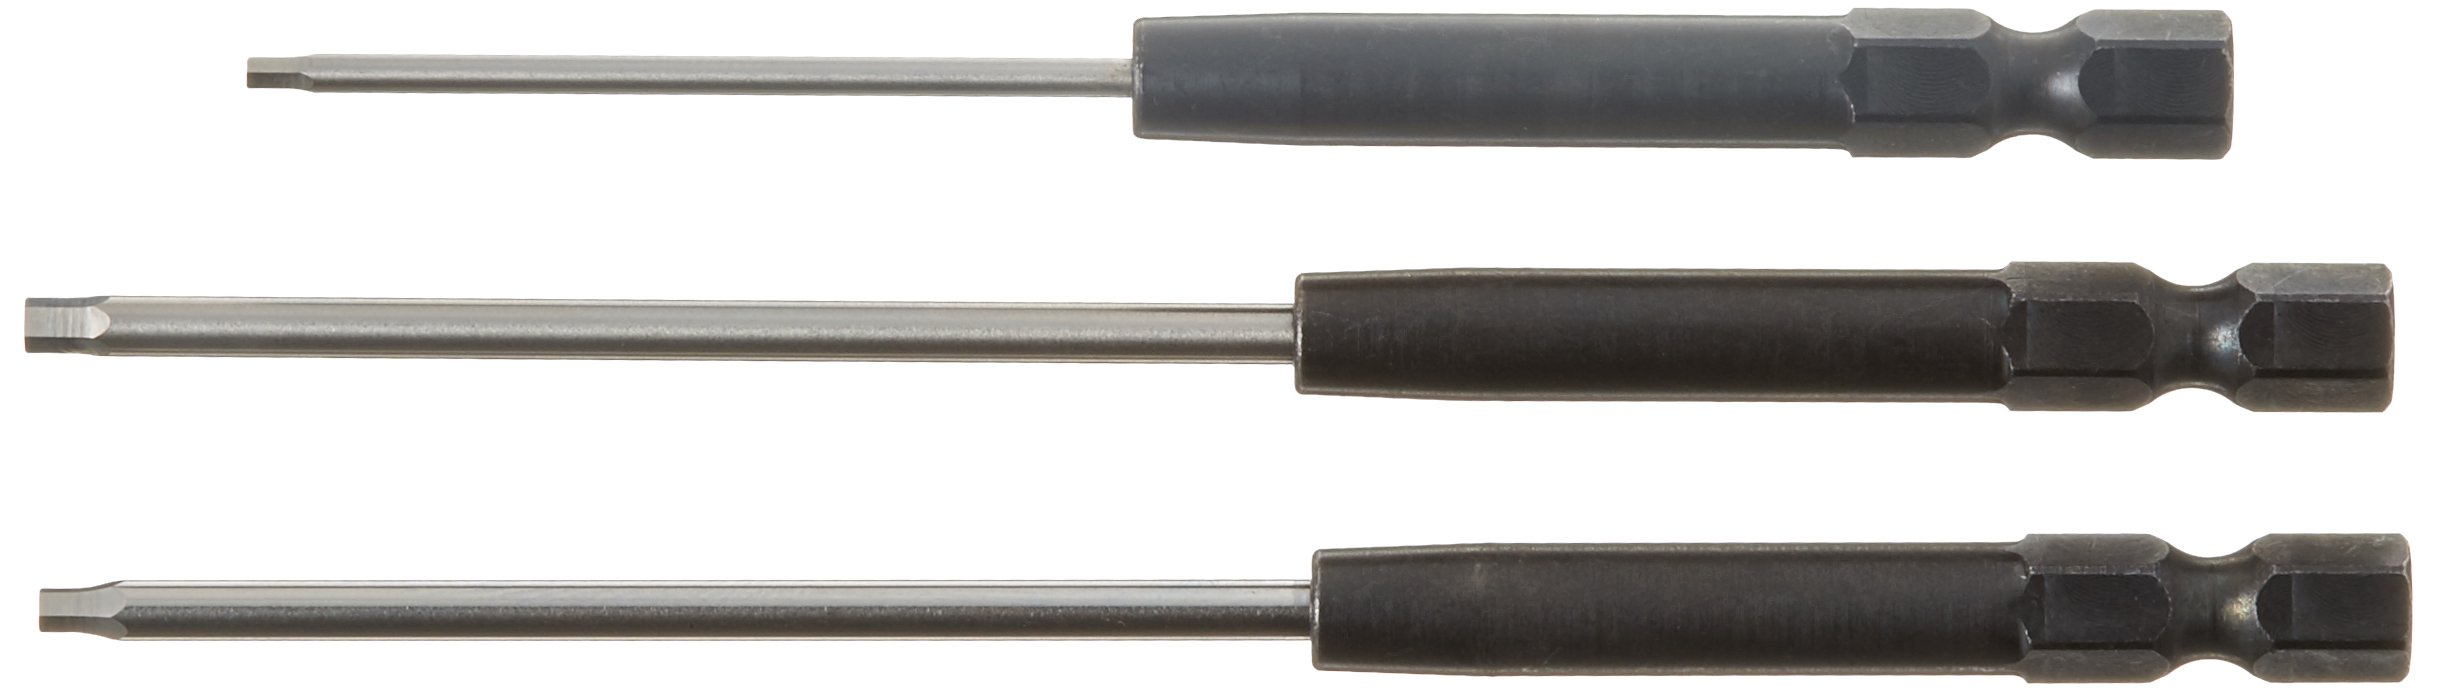 Moores Ideal Products 9511 Standard Speed Tip Set